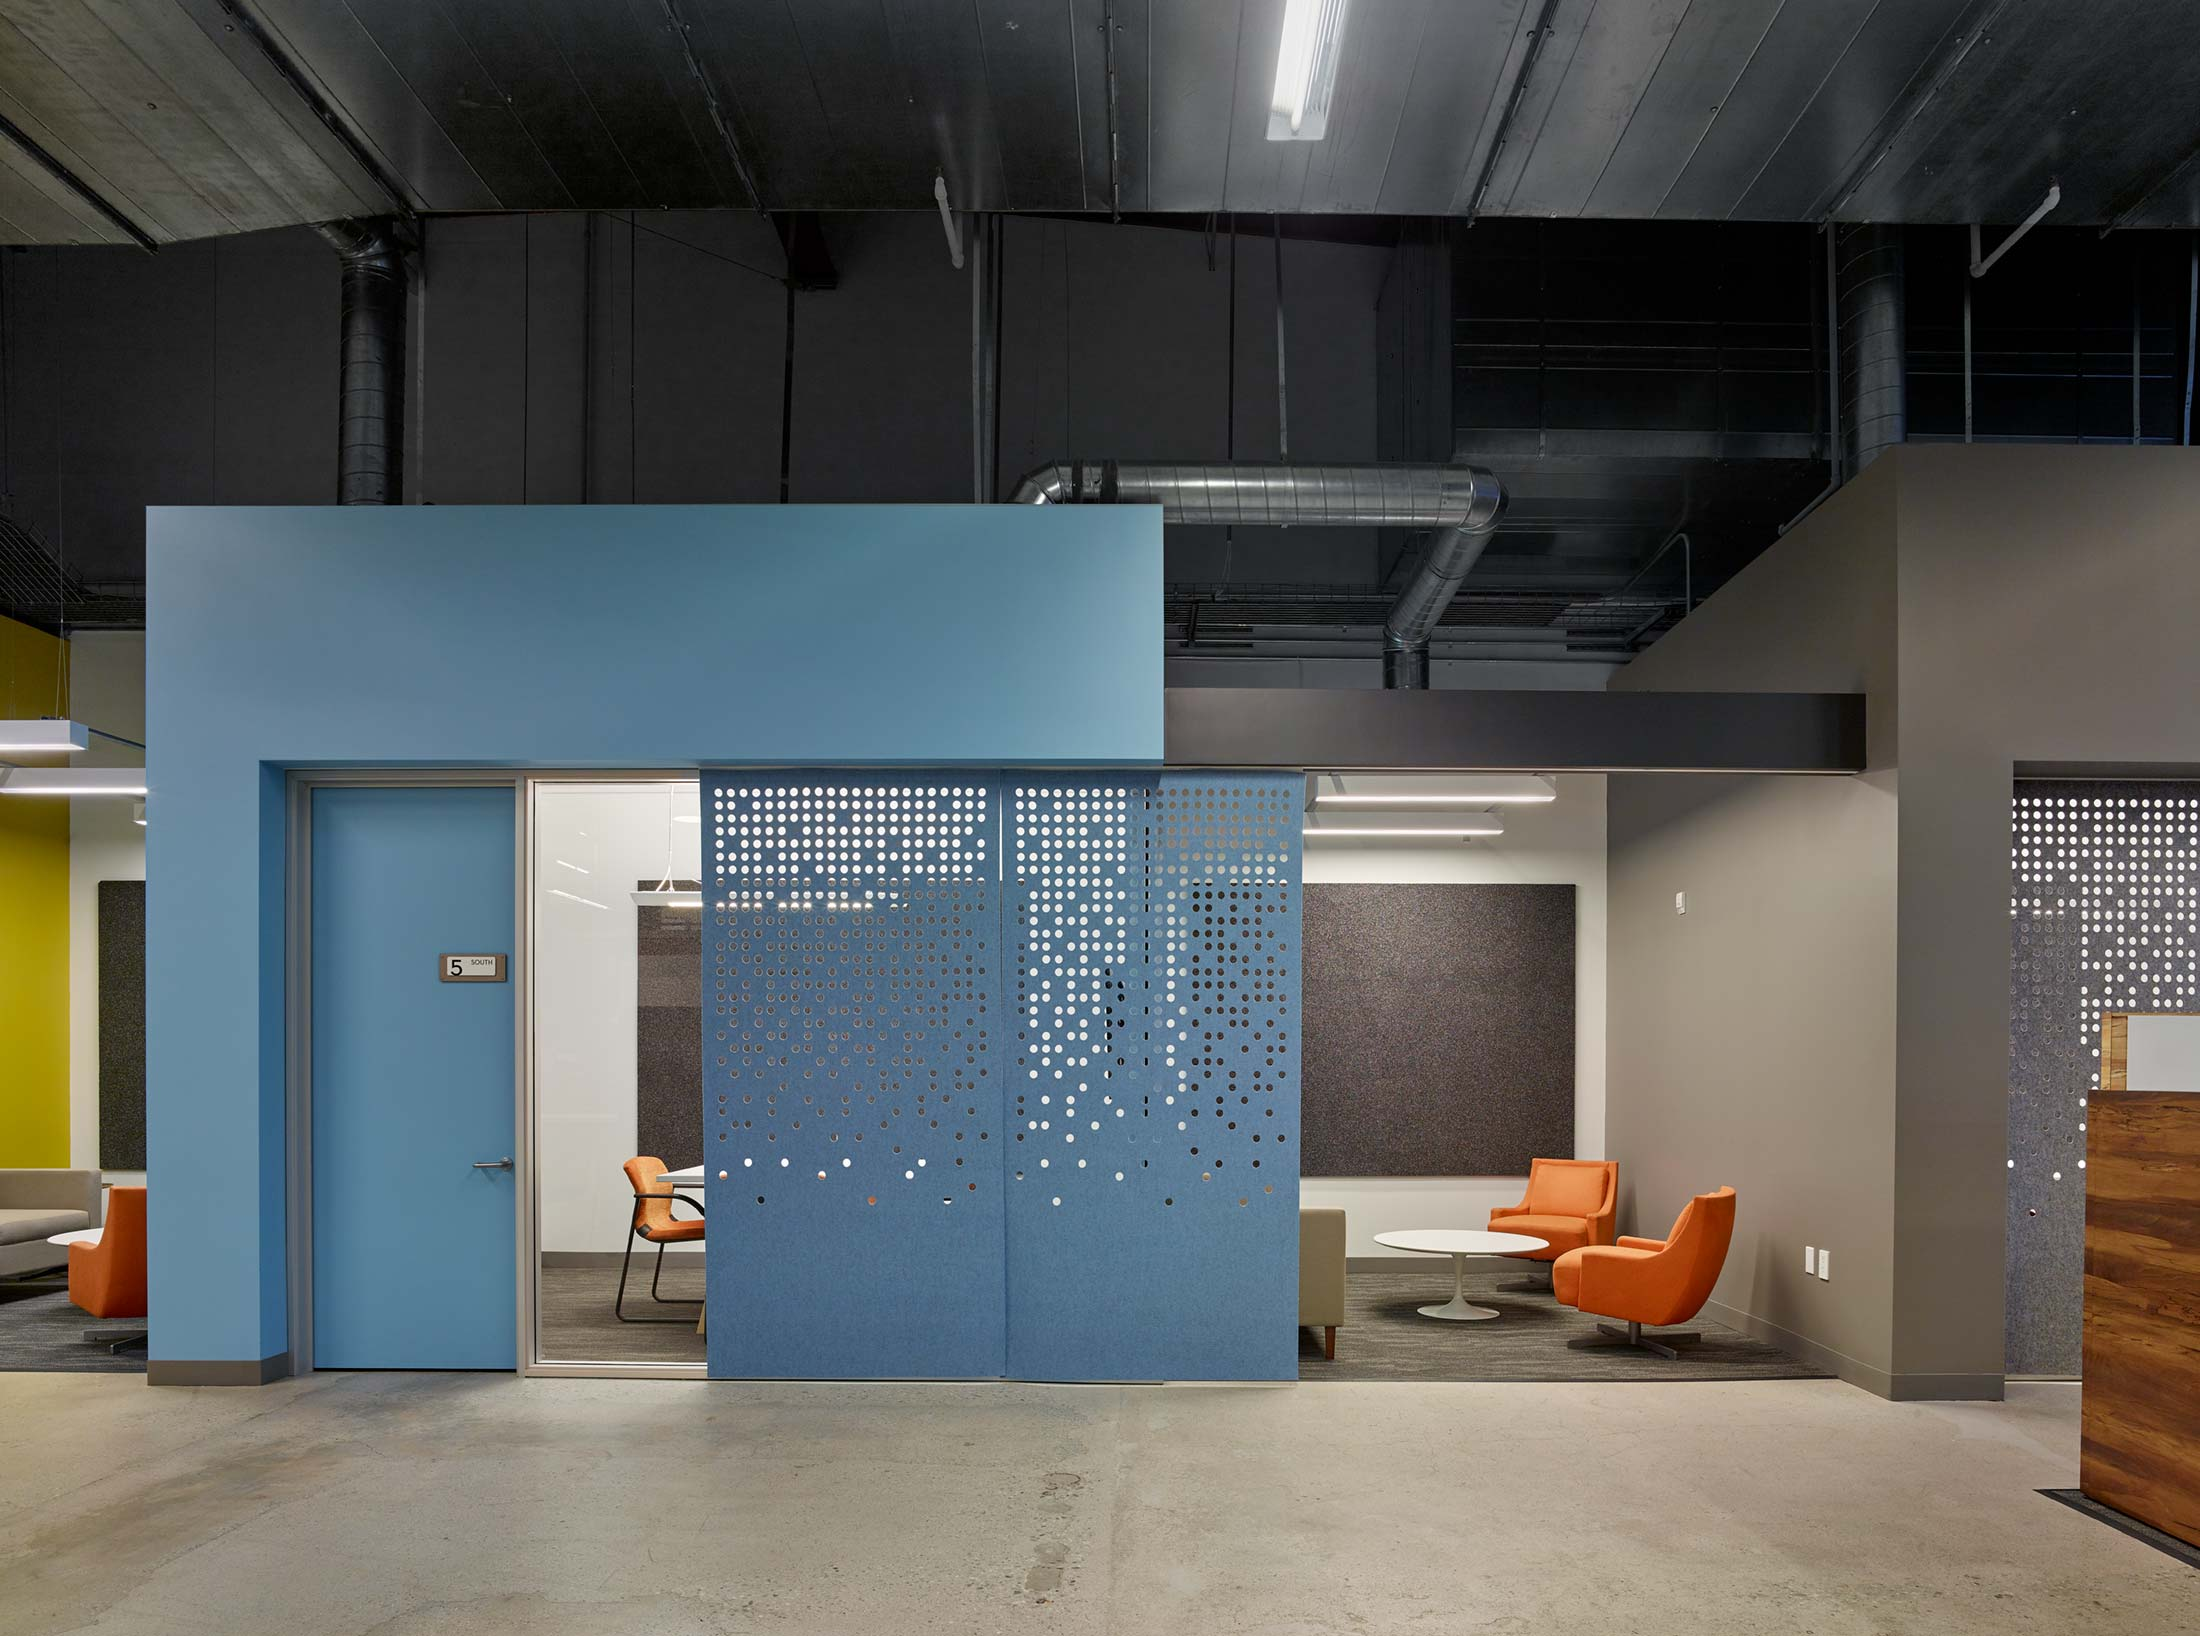 modern-architecture-commercial-interior-adaptive-reuse-workspace-california-shubindonaldson-team-one-usa-07